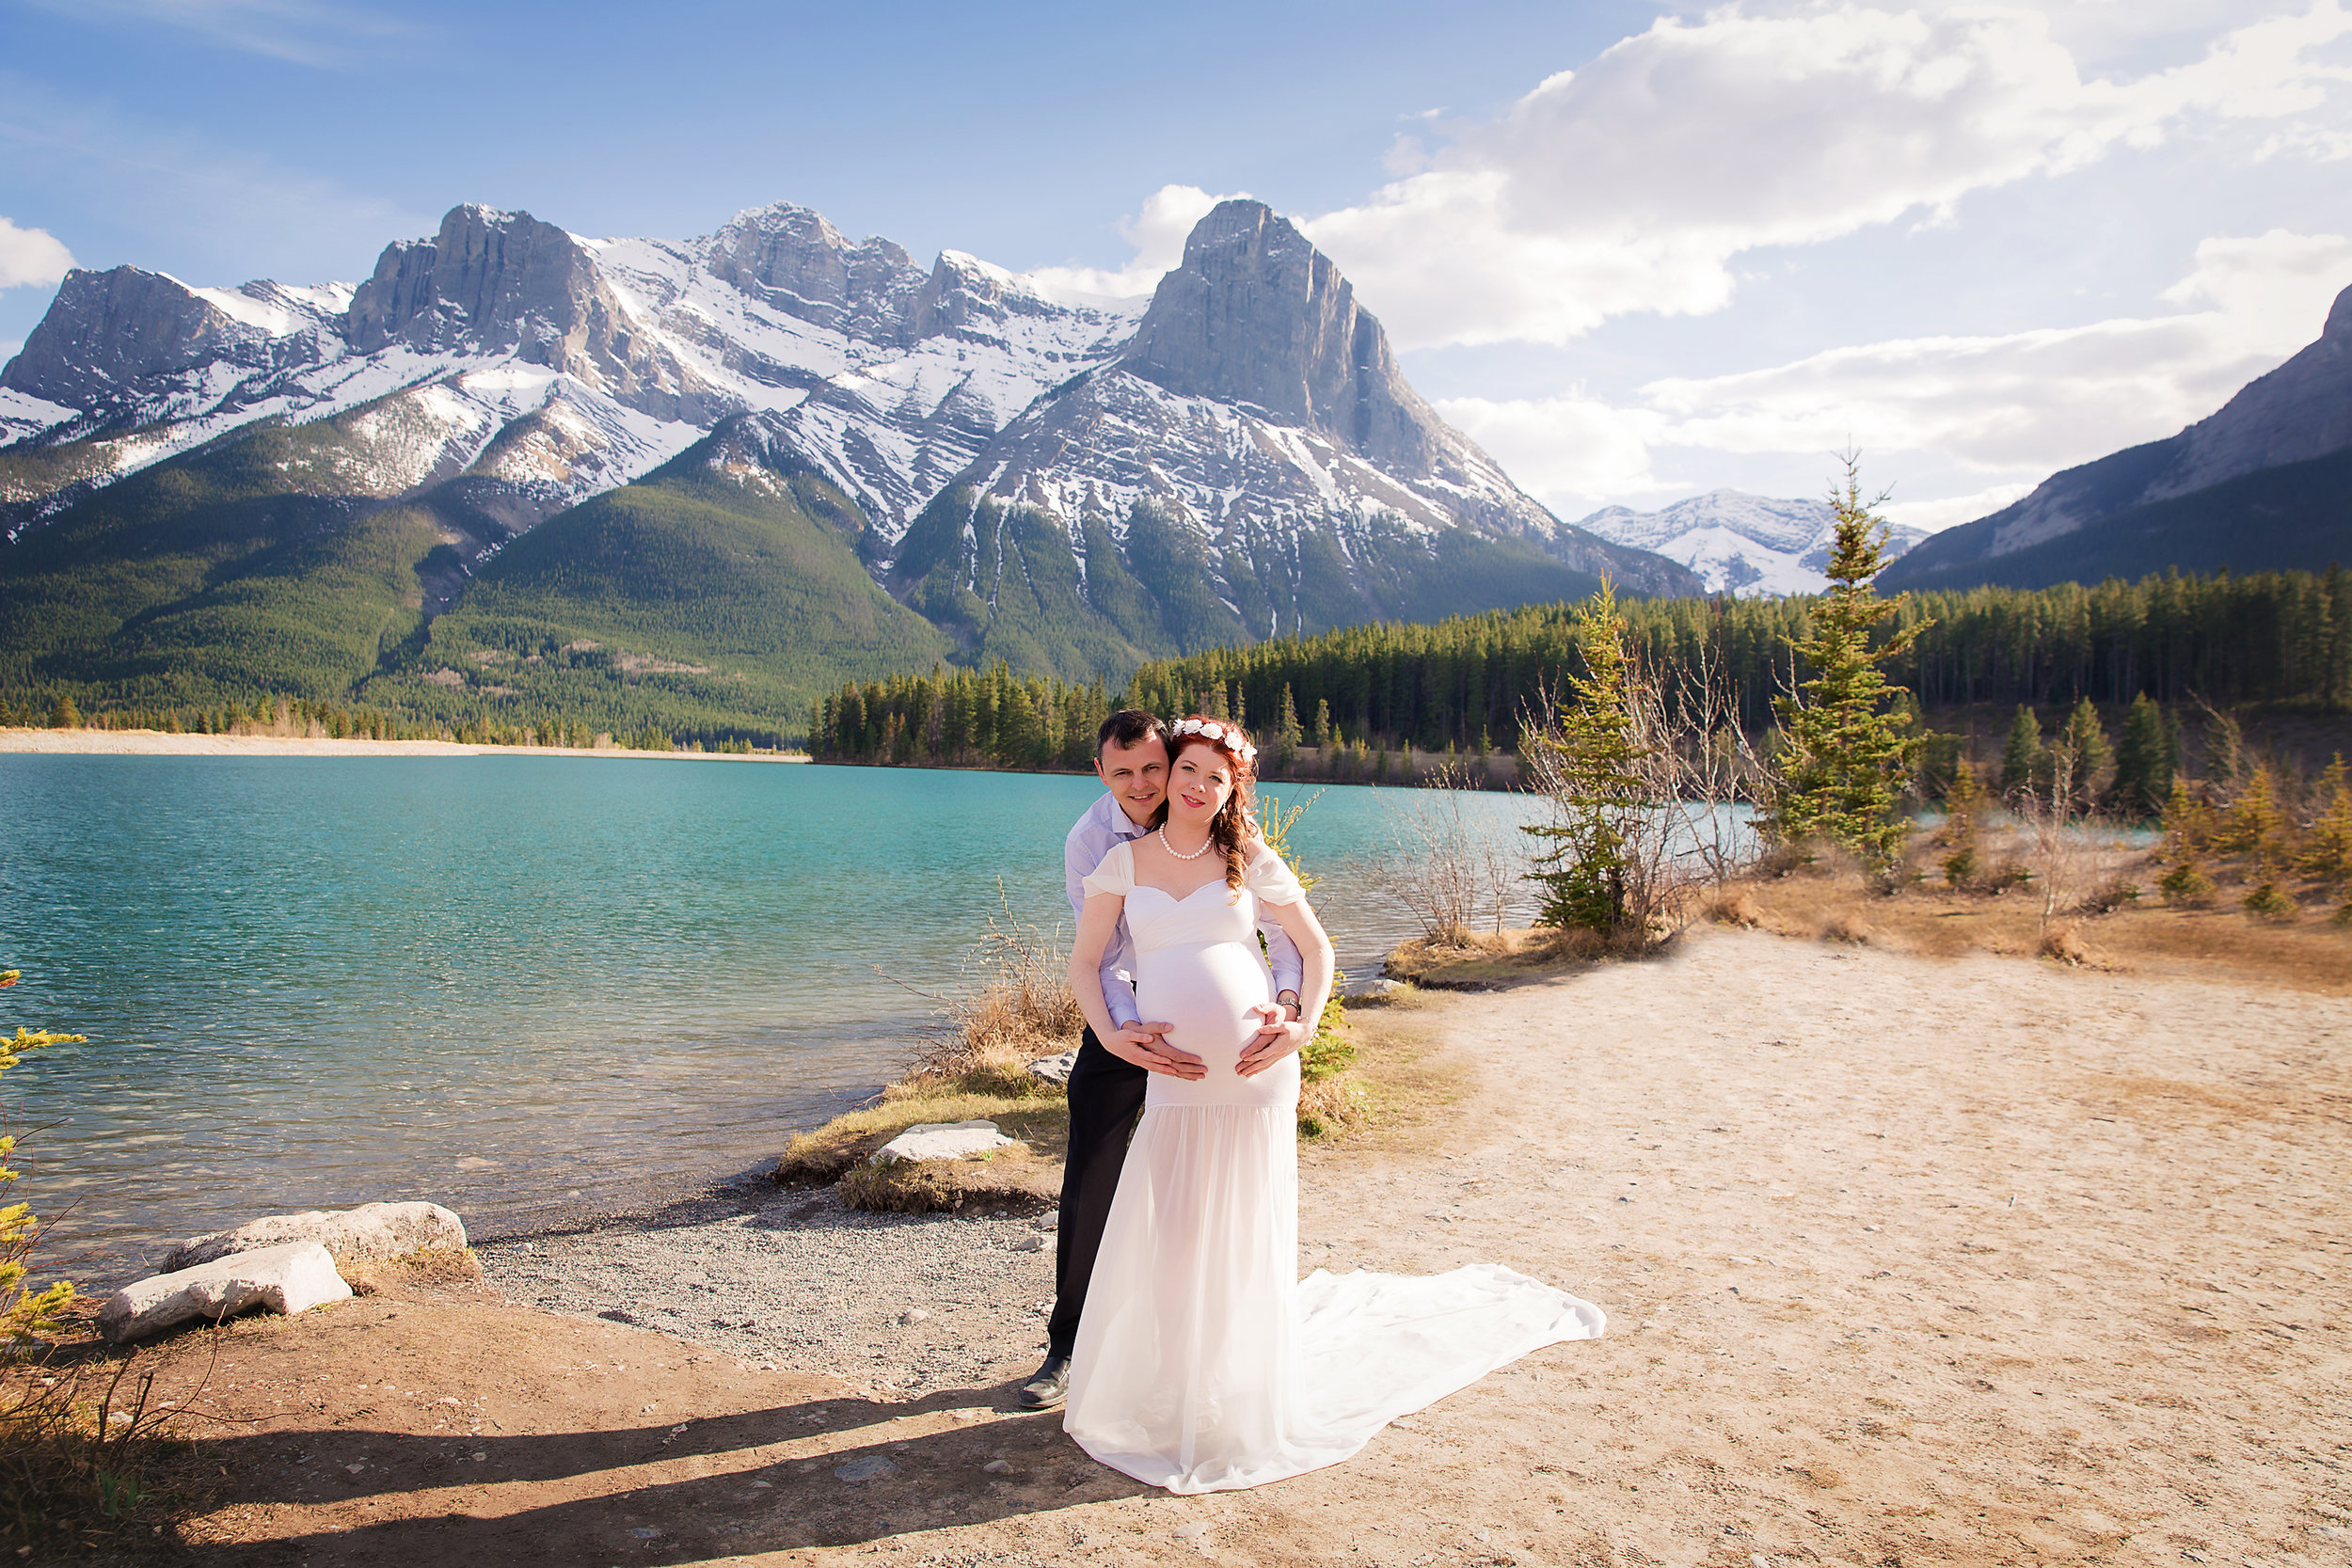 Parents to be in Canmore, Alberta - Mountain maternity session in Alberta, Canada. Calgary maternity photographer - Milashka Photography